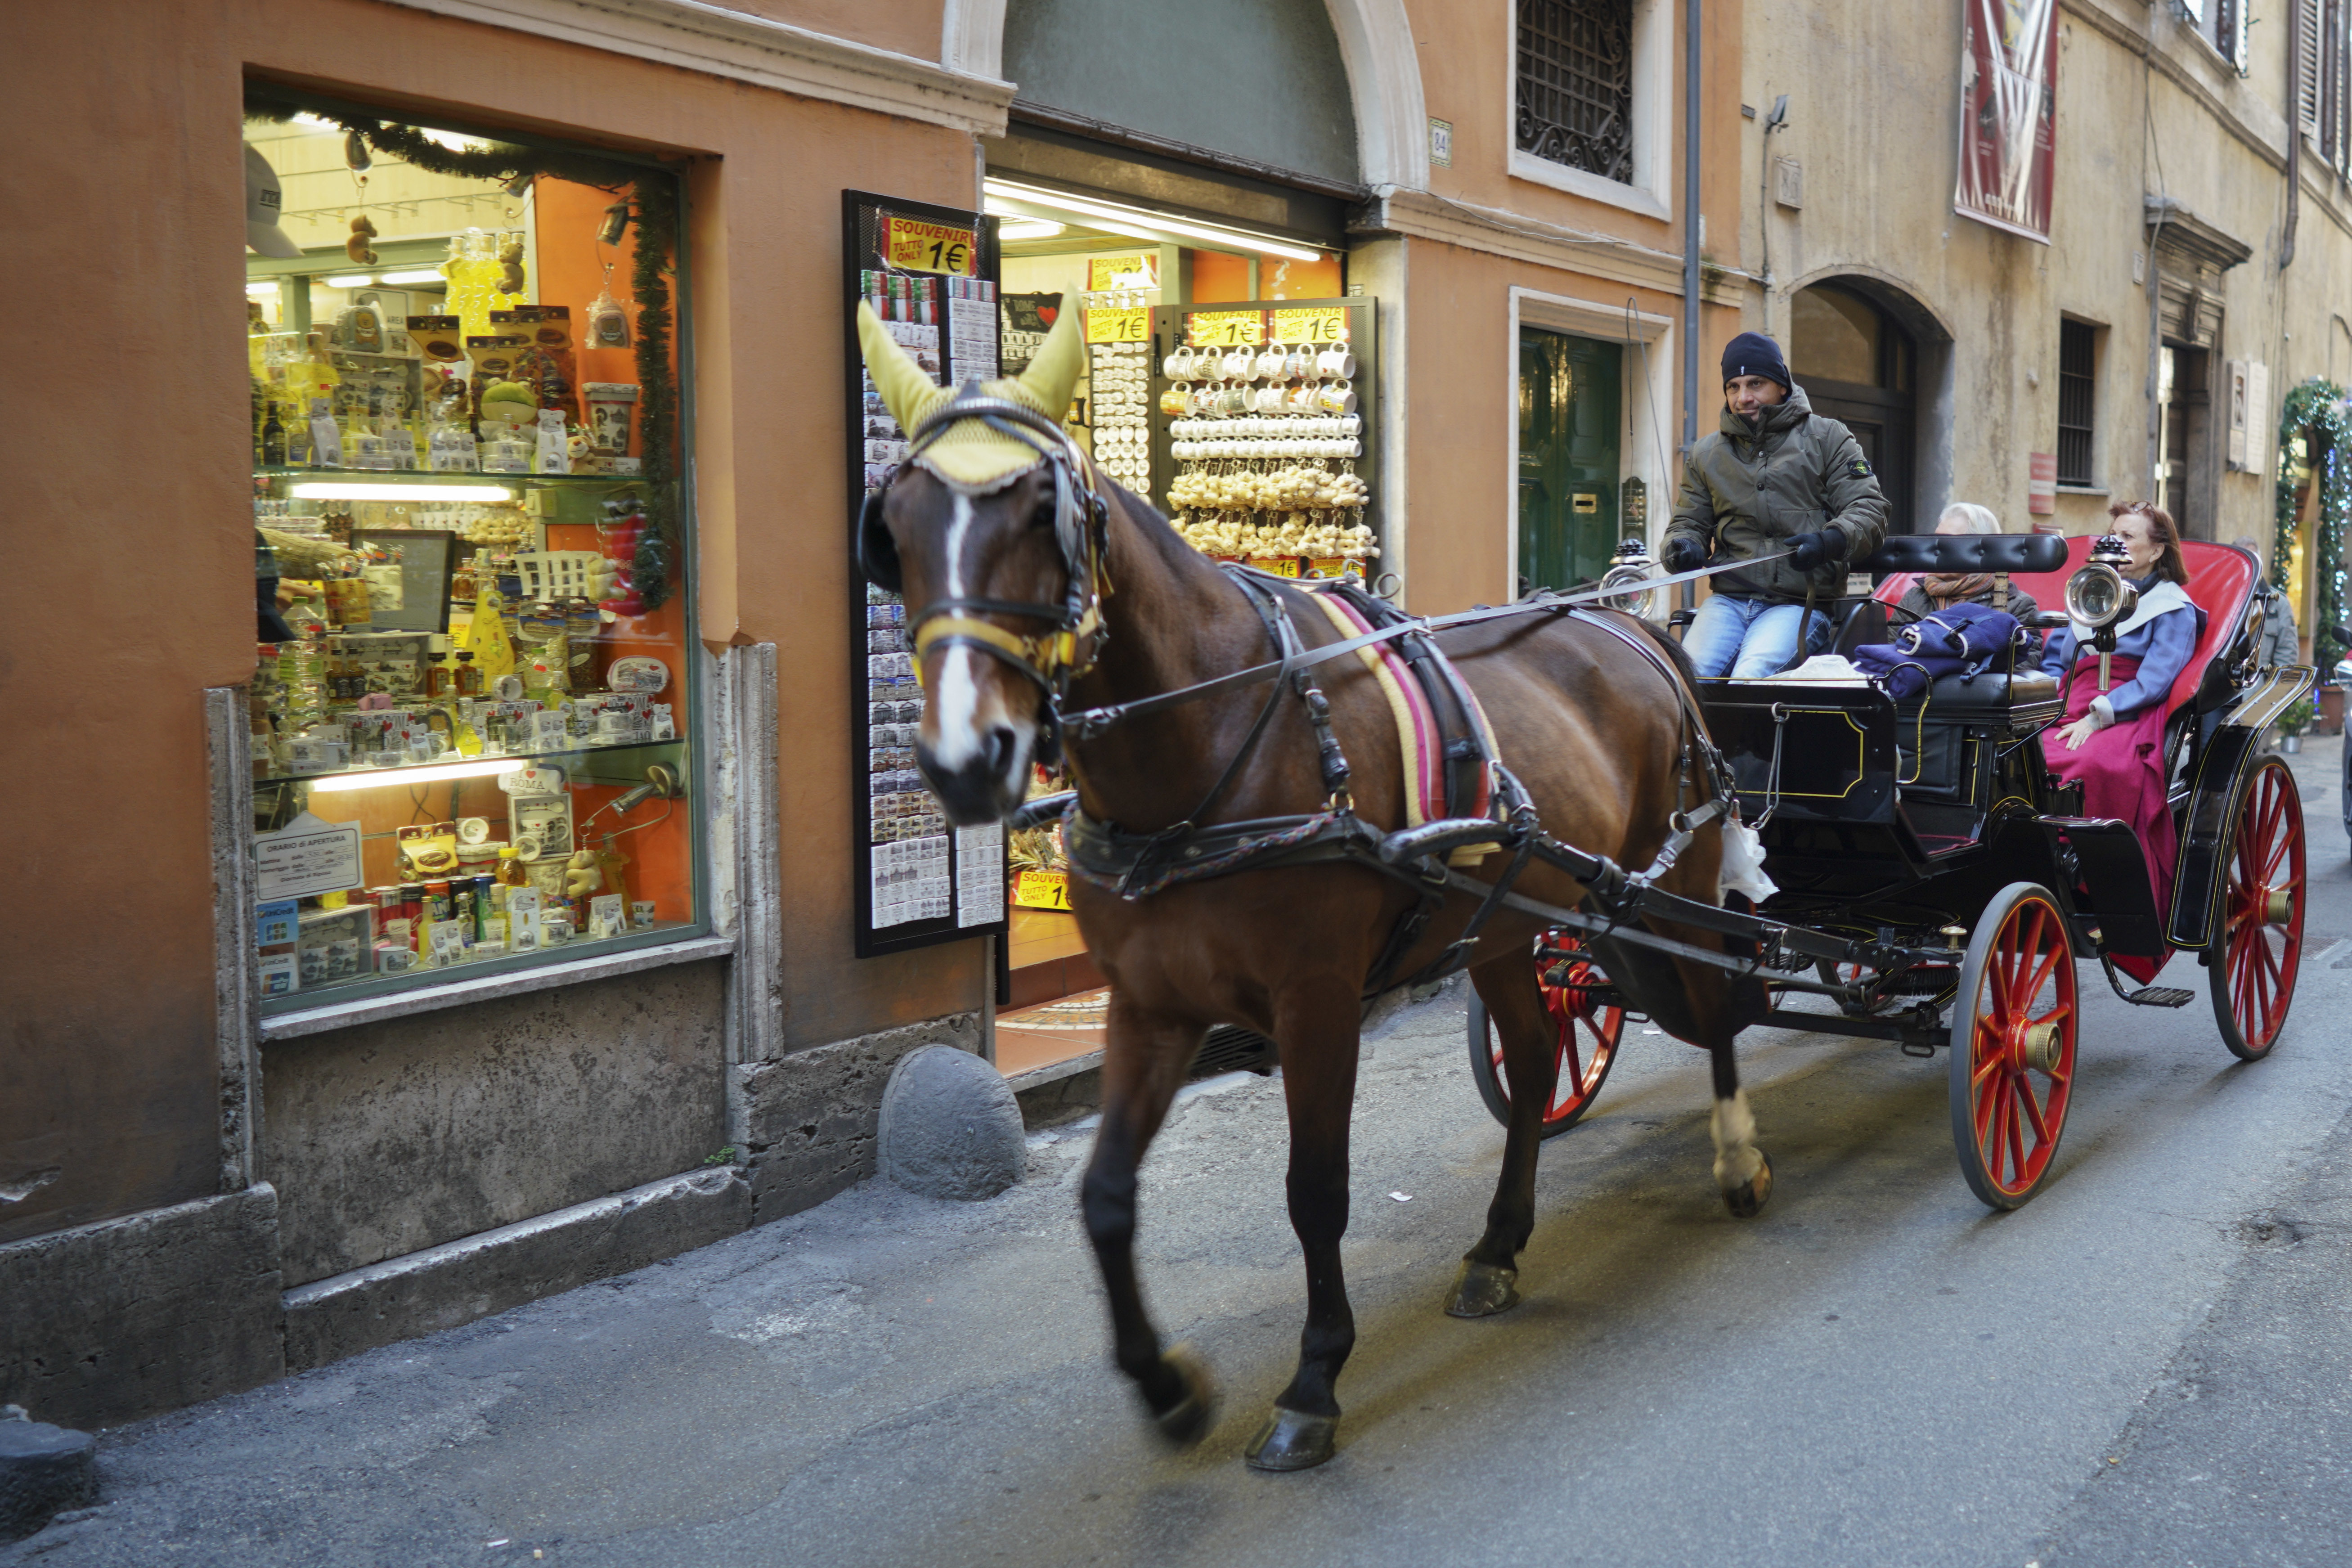 A horse pulls a botticella, a traditional Roman touristic horse-driven carriage, along an alley in downtown Rome, Monday, Jan. 7, 2019. (AP Photo/Andrew Medichini)